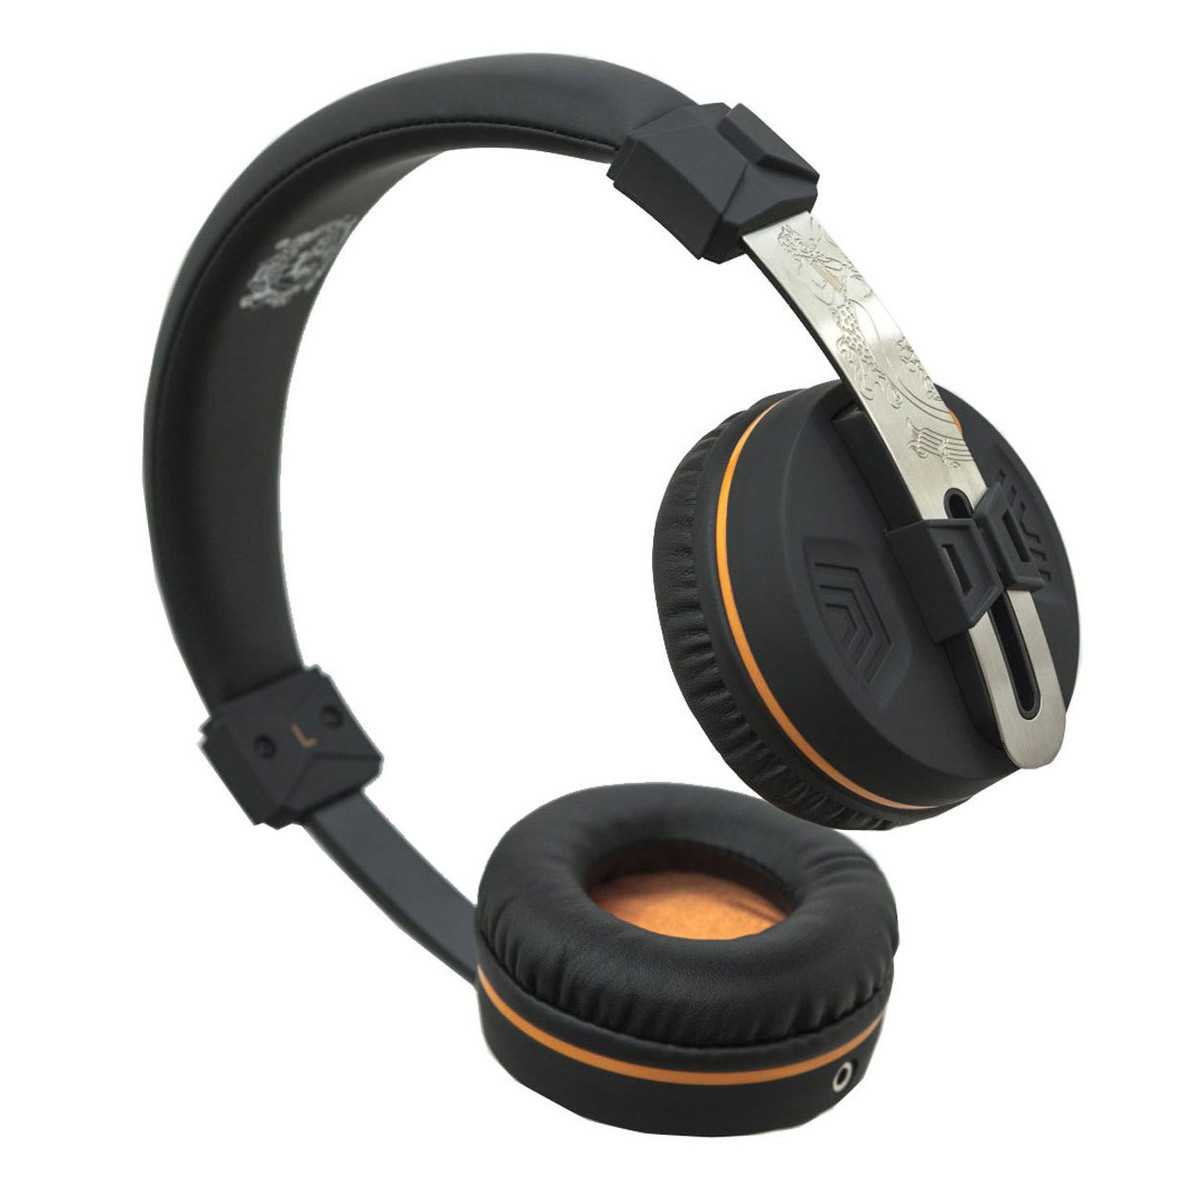 ORANGE O EDITION HEADPHONES CUFFIE